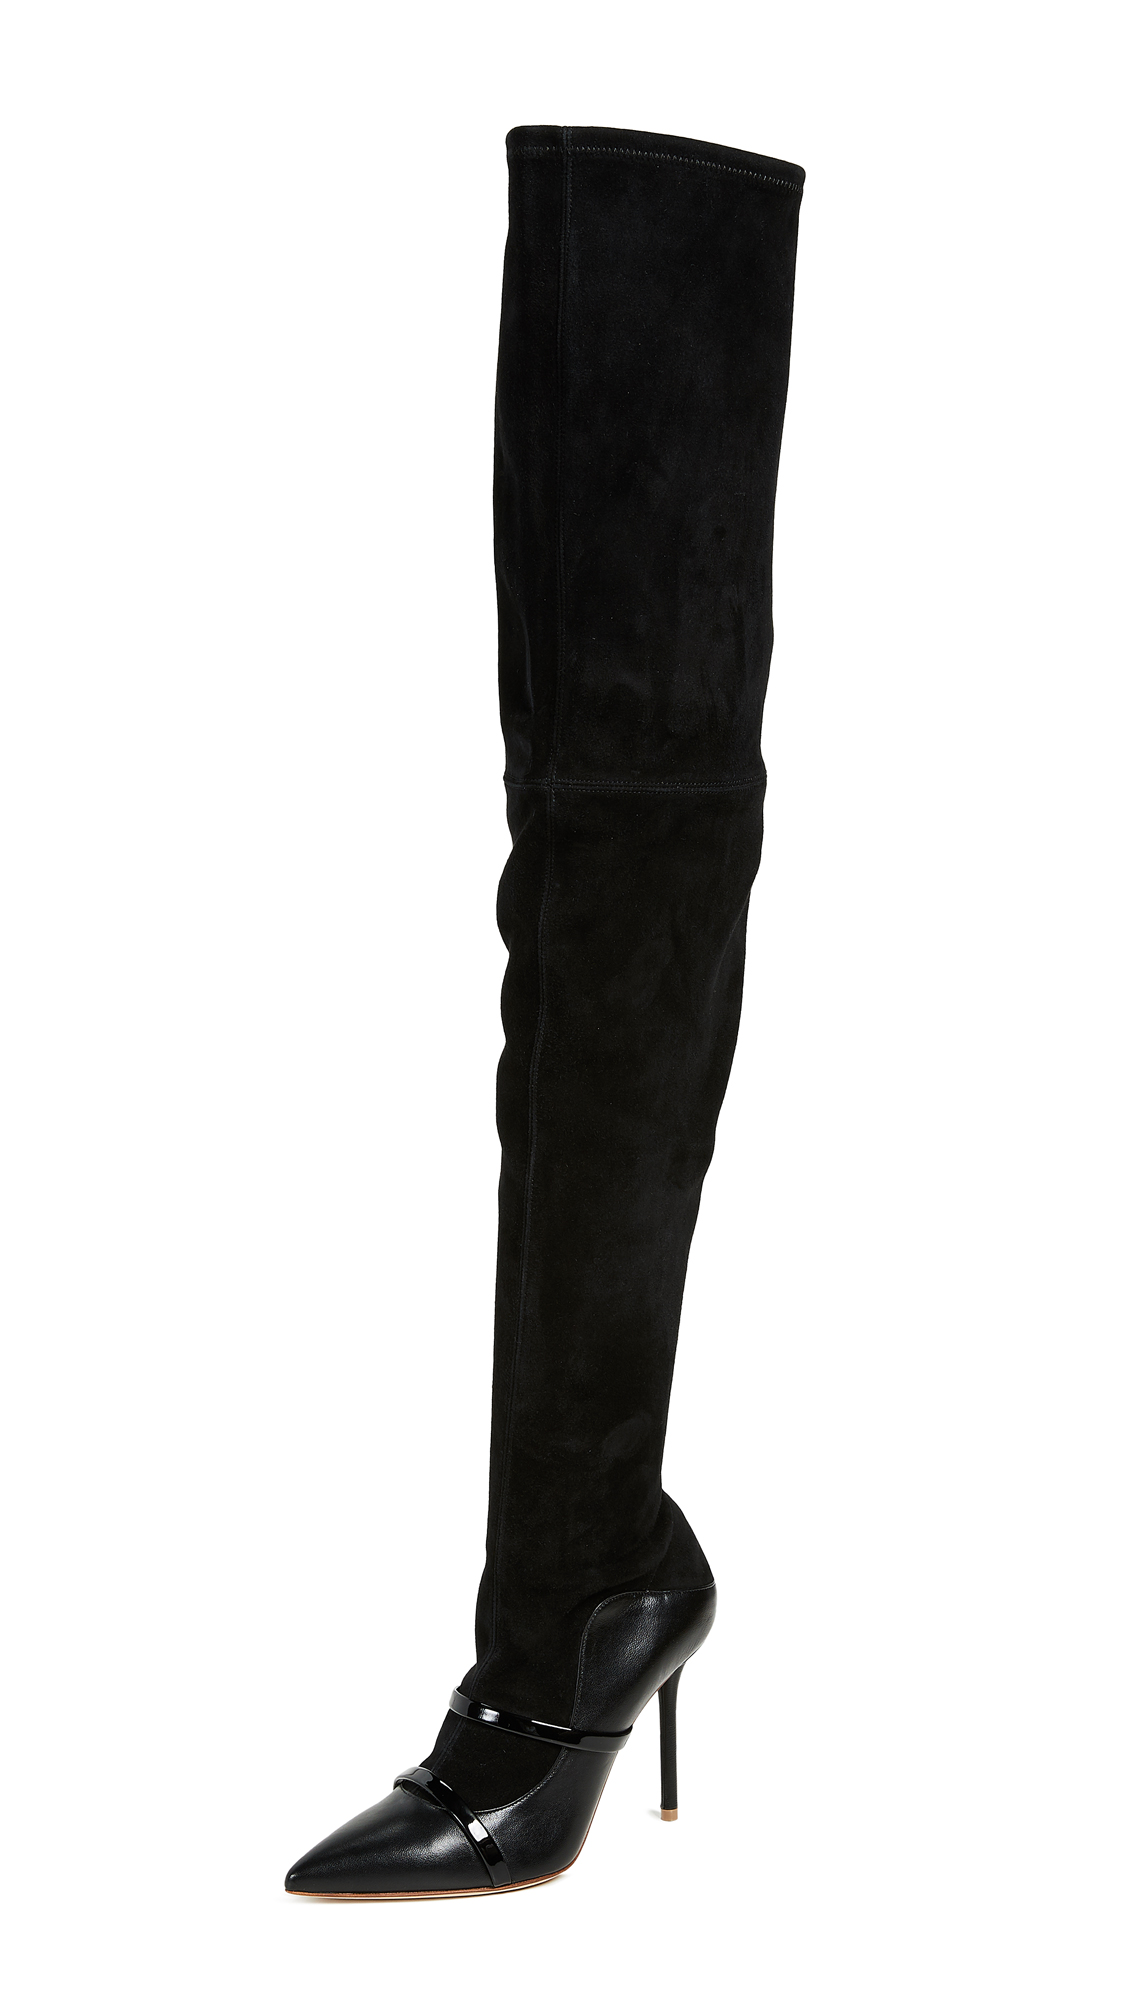 Malone Souliers Madison Over the Knee Boots - Black/Black